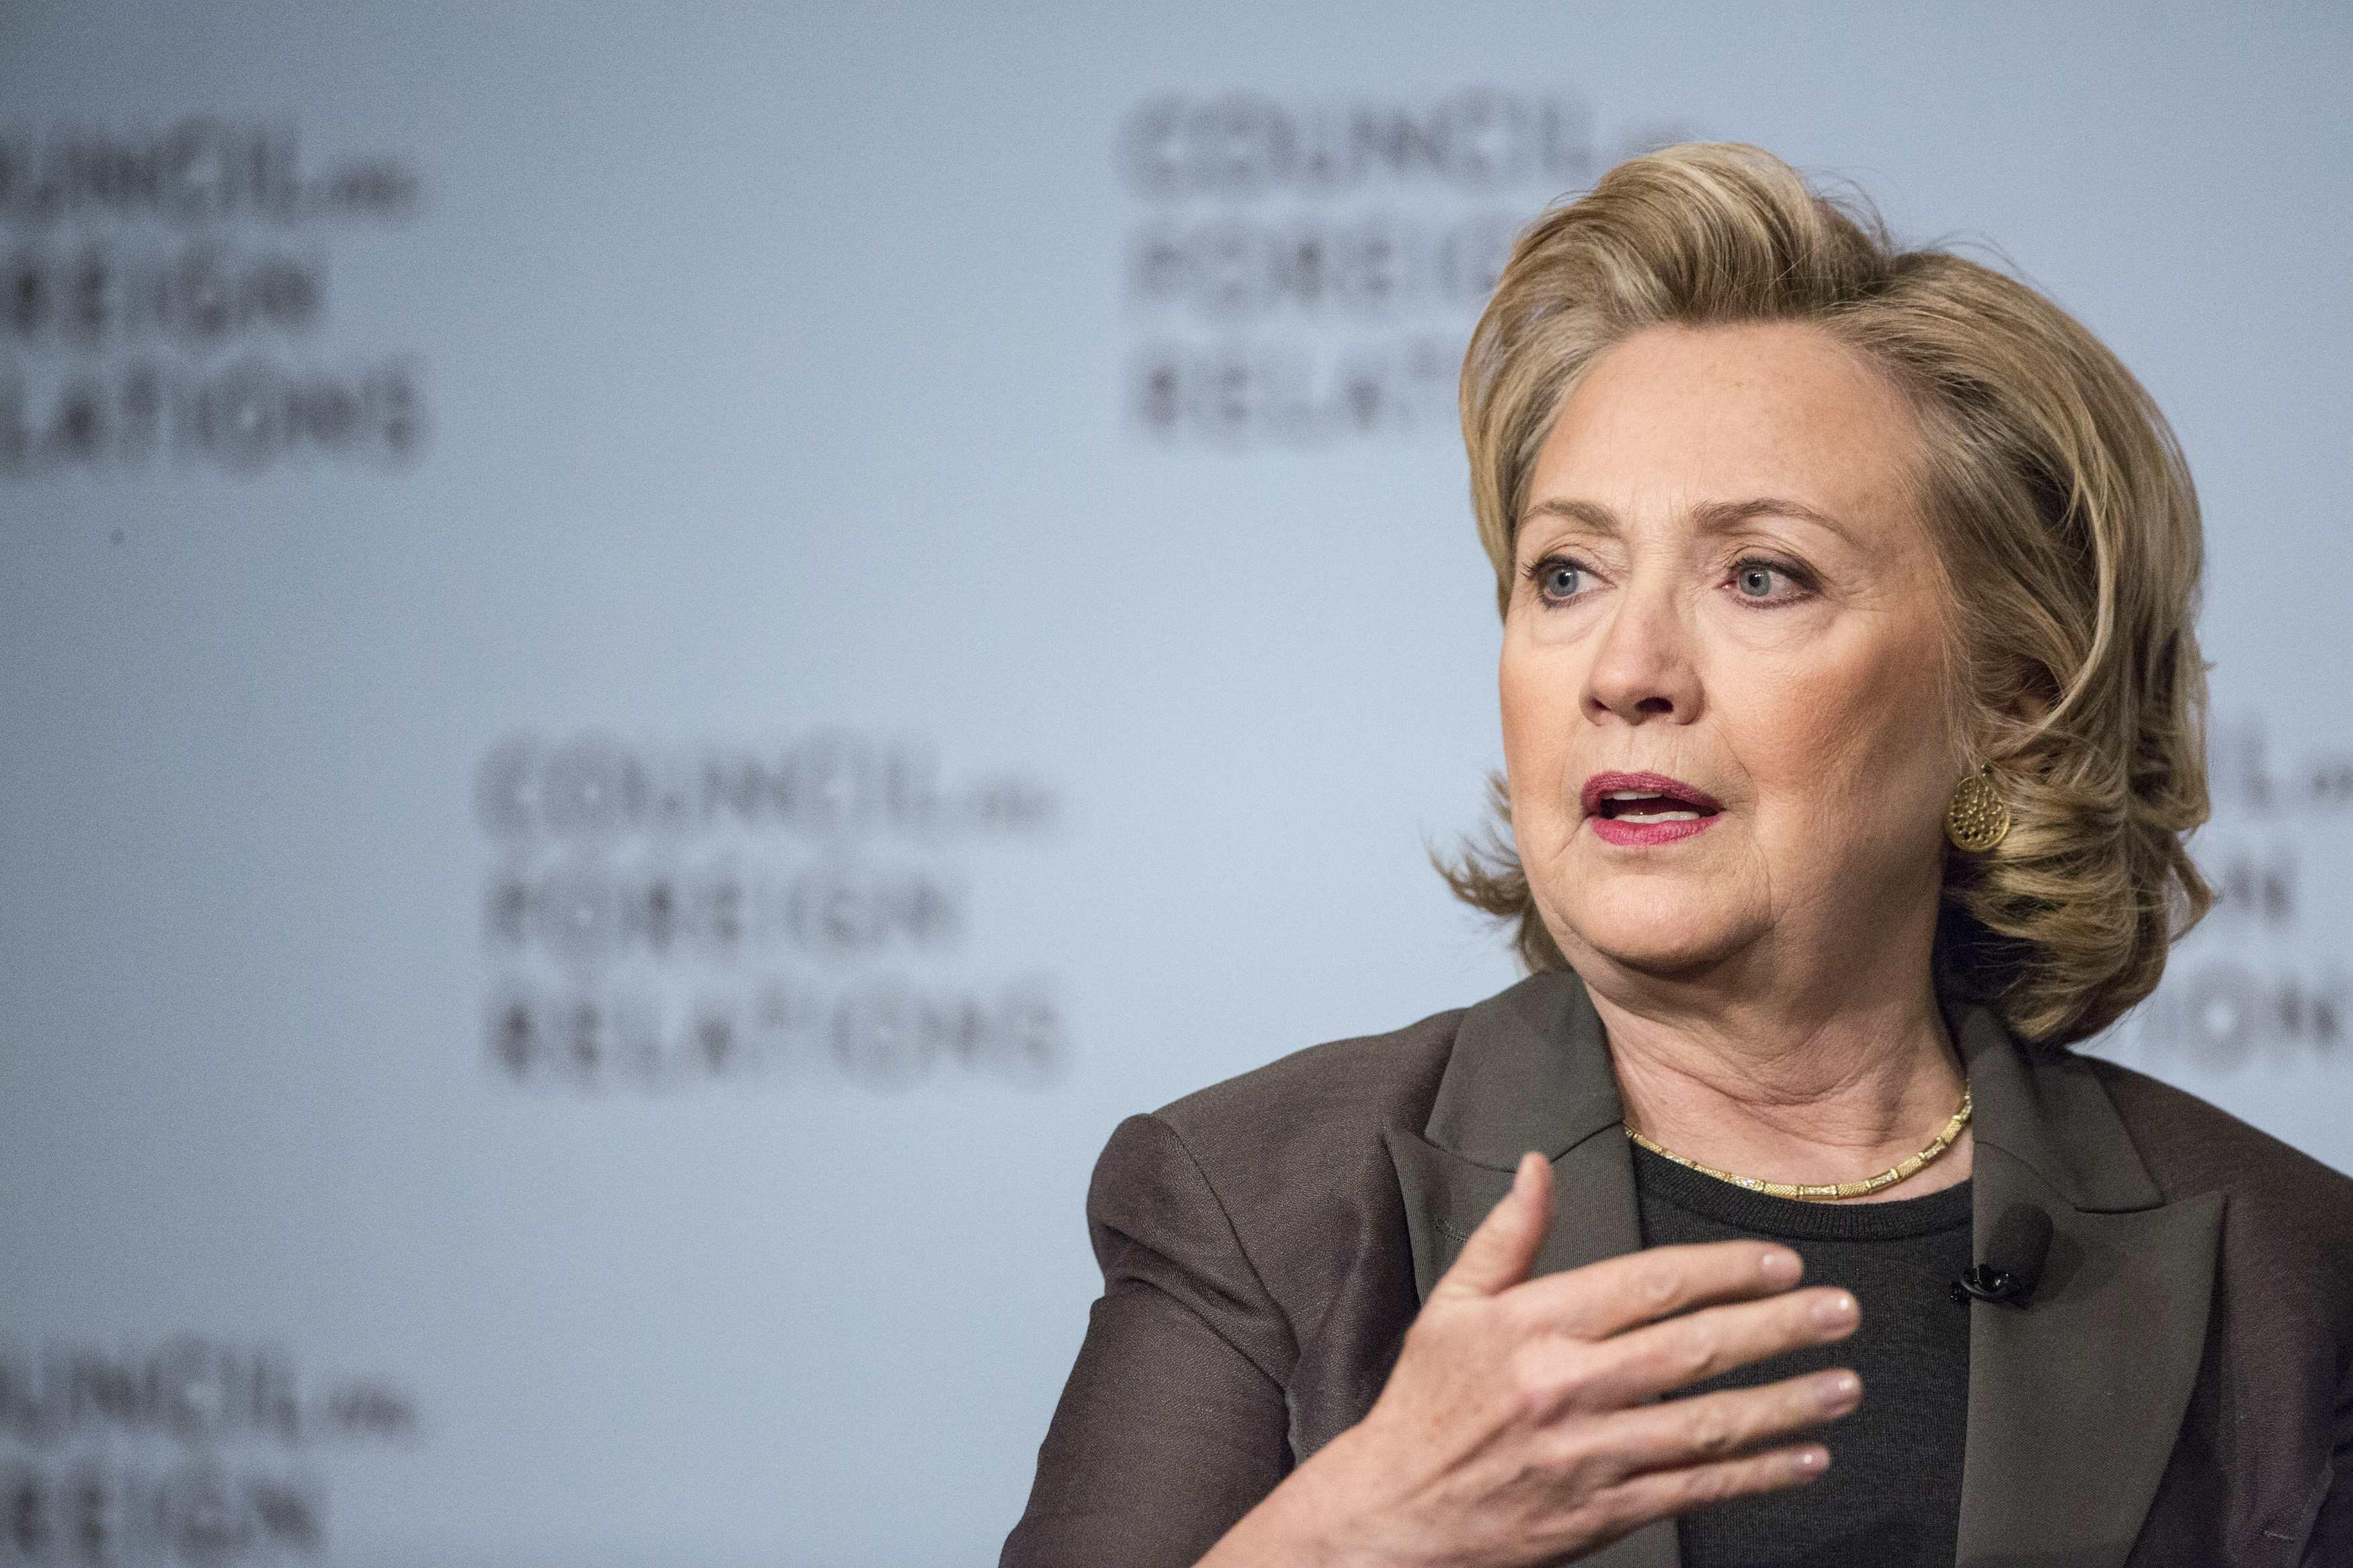 Image: Former U.S. Secretary of State Hillary Clinton participates in